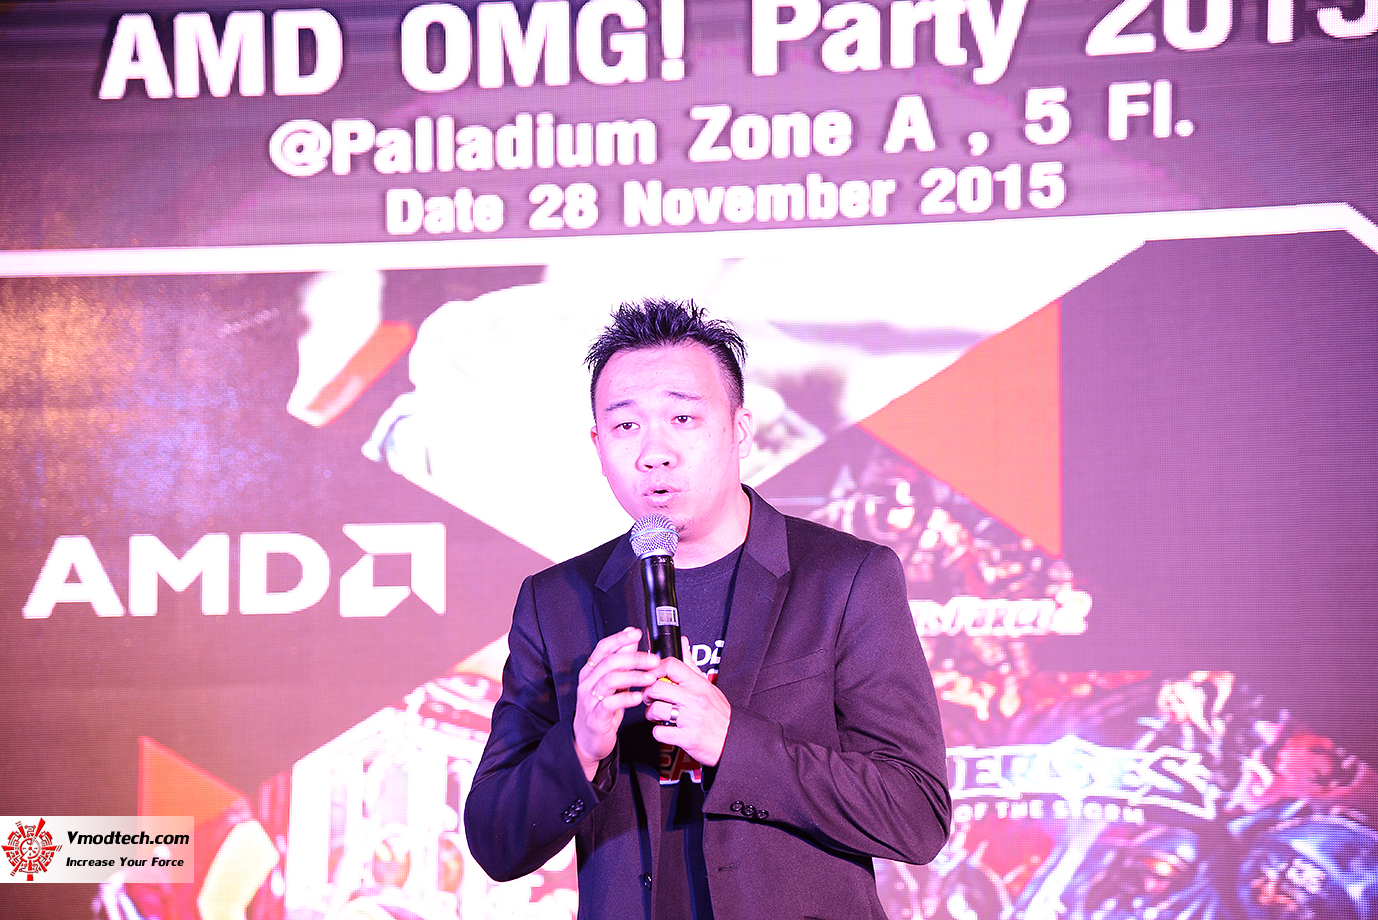 dsc 6556 AMD OMG! Party 2015 (AMD Overclock Modding Gaming Party 2015)